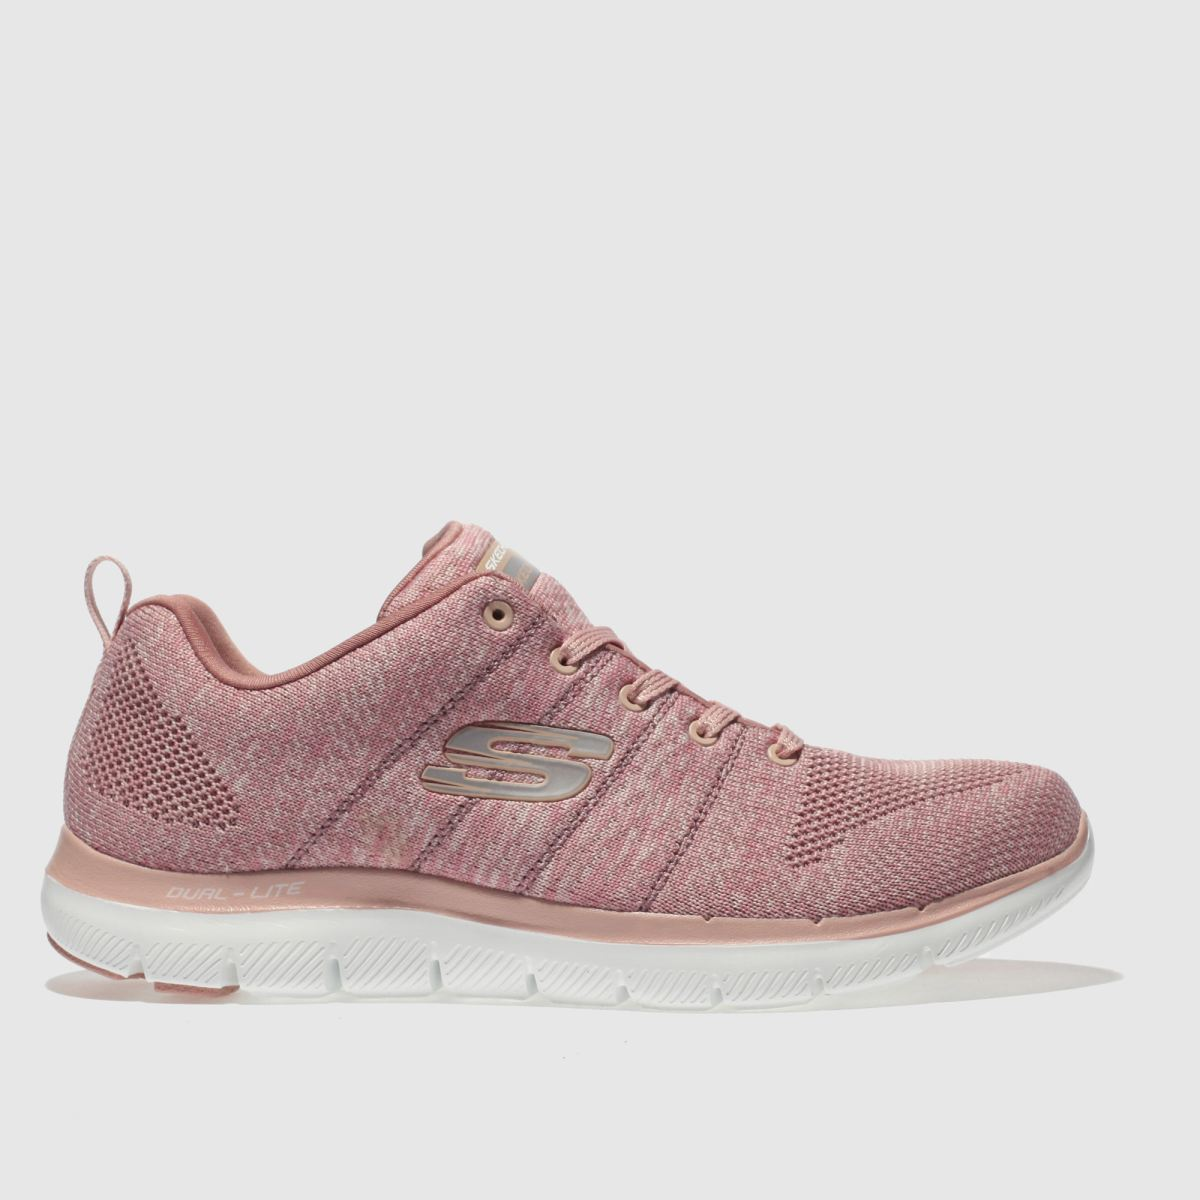 Skechers Pale Pink Flex Appeal 2.0 High Energy Trainers